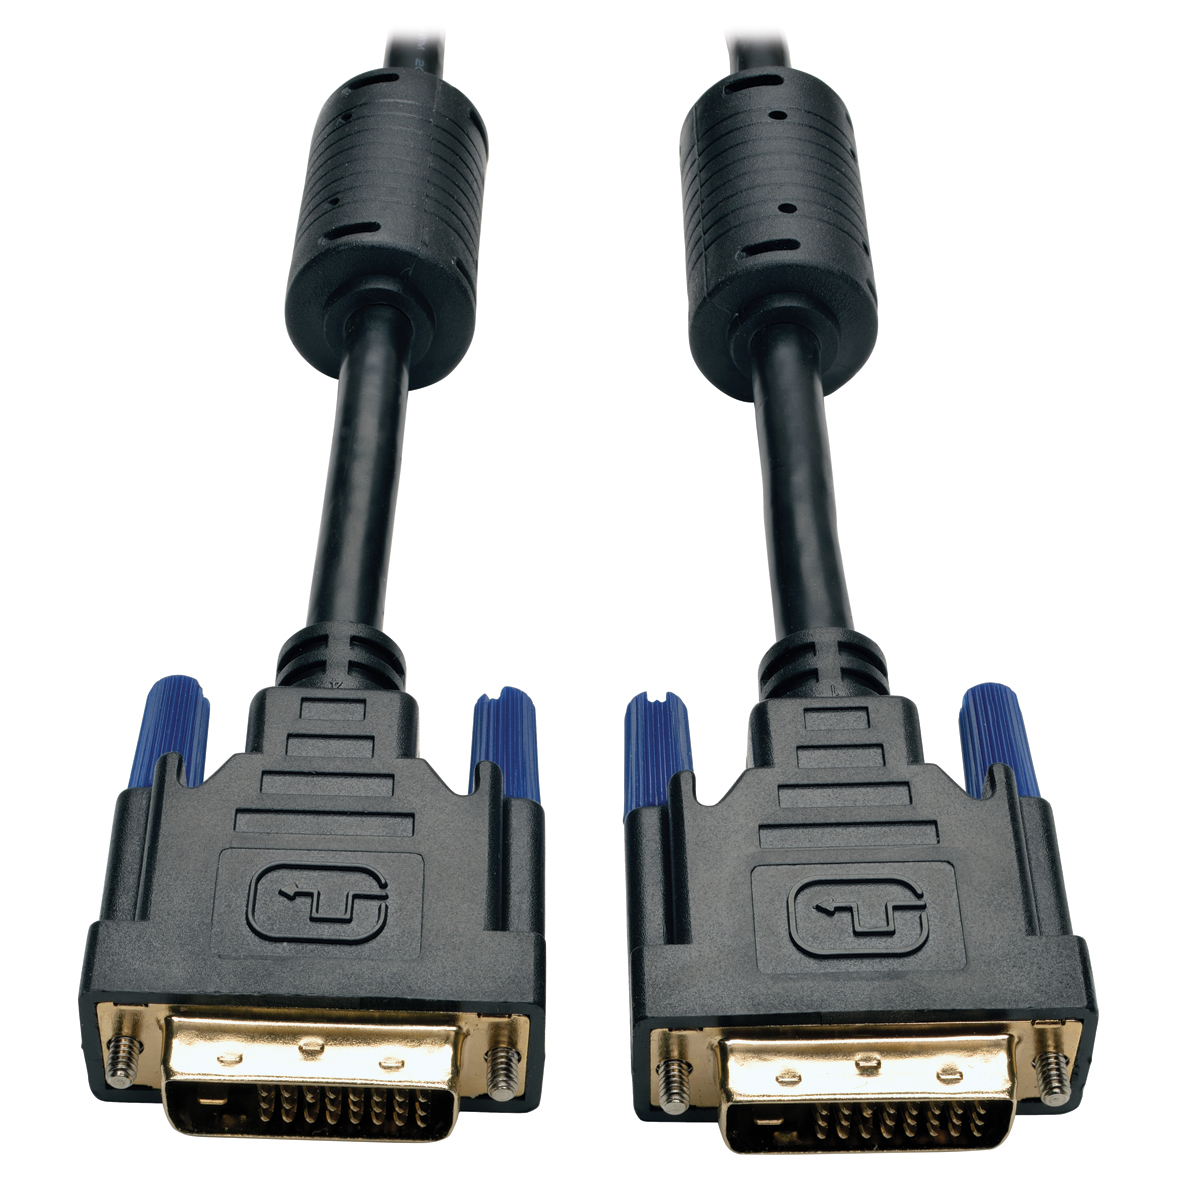 DVI Dual Link Cable Digital TMDS Monitor Cable (DVI-D M/M)  30-ft - DVI for Video Device TV Projector Monitor - 30 ft - 1 x DVI-D (Dual-Link) Male Digital Video - 1 x DVI-D (Dual-Link) Male Digital Video - Gold-plated Contacts - Shielding - Black